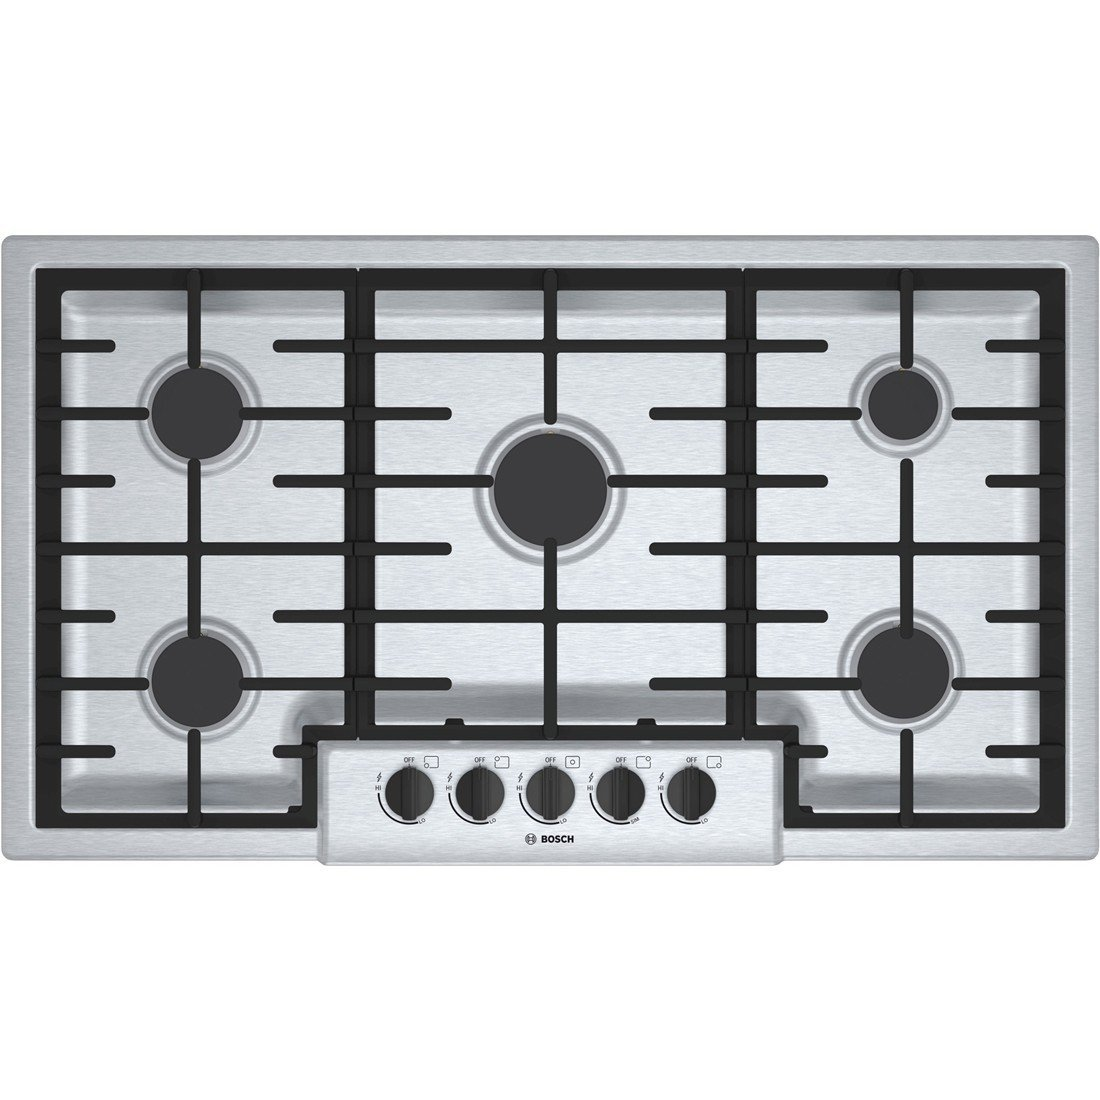 Bosch 500 Series 5-Burner Gas Stovetop – Stainless Steel Powerful 16,000 BTU Burner for Boiling, Searing and Stir-Frying